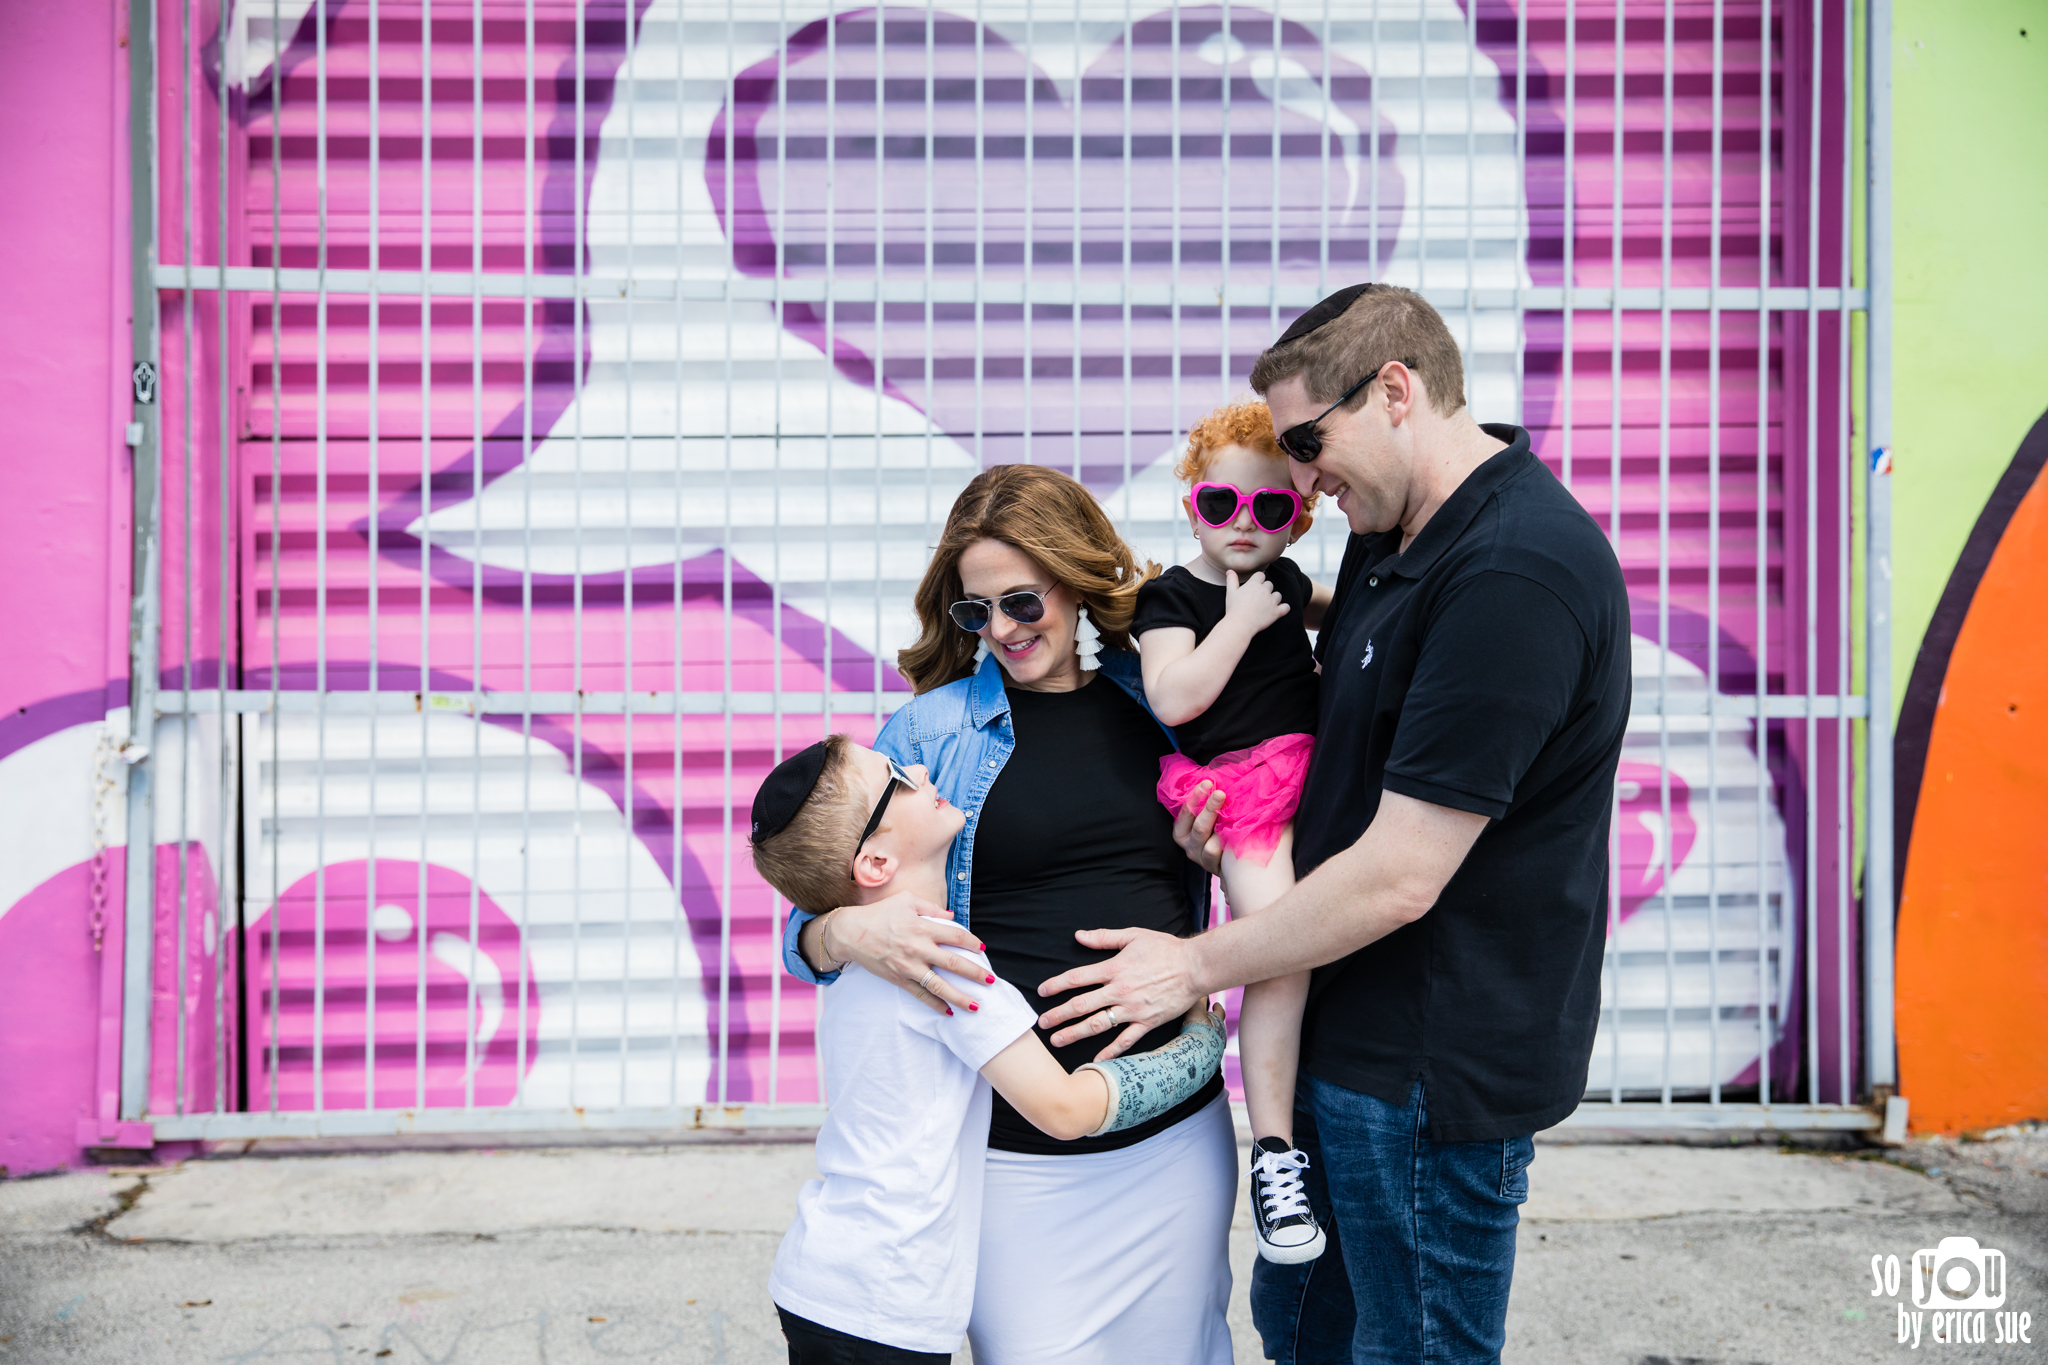 wynwood-family-photography-so-you-by-erica-sue-ft-lauderdale-davie-miami-fl-florida-2900.jpg